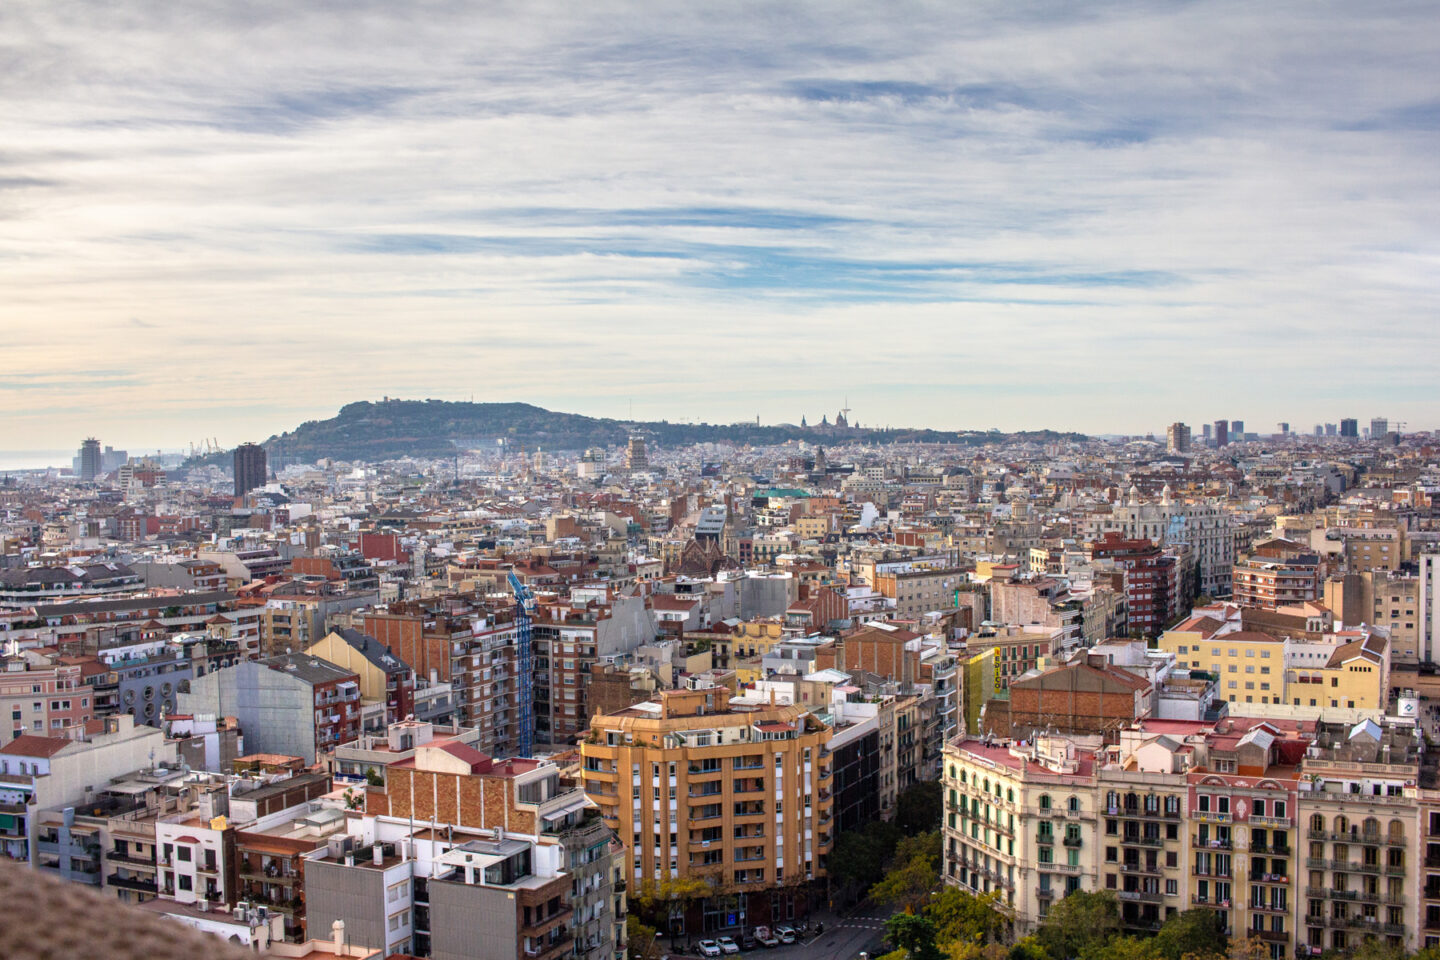 View of Barcelona city from the Passion Tower. Montjuic can be seen in the far distance.